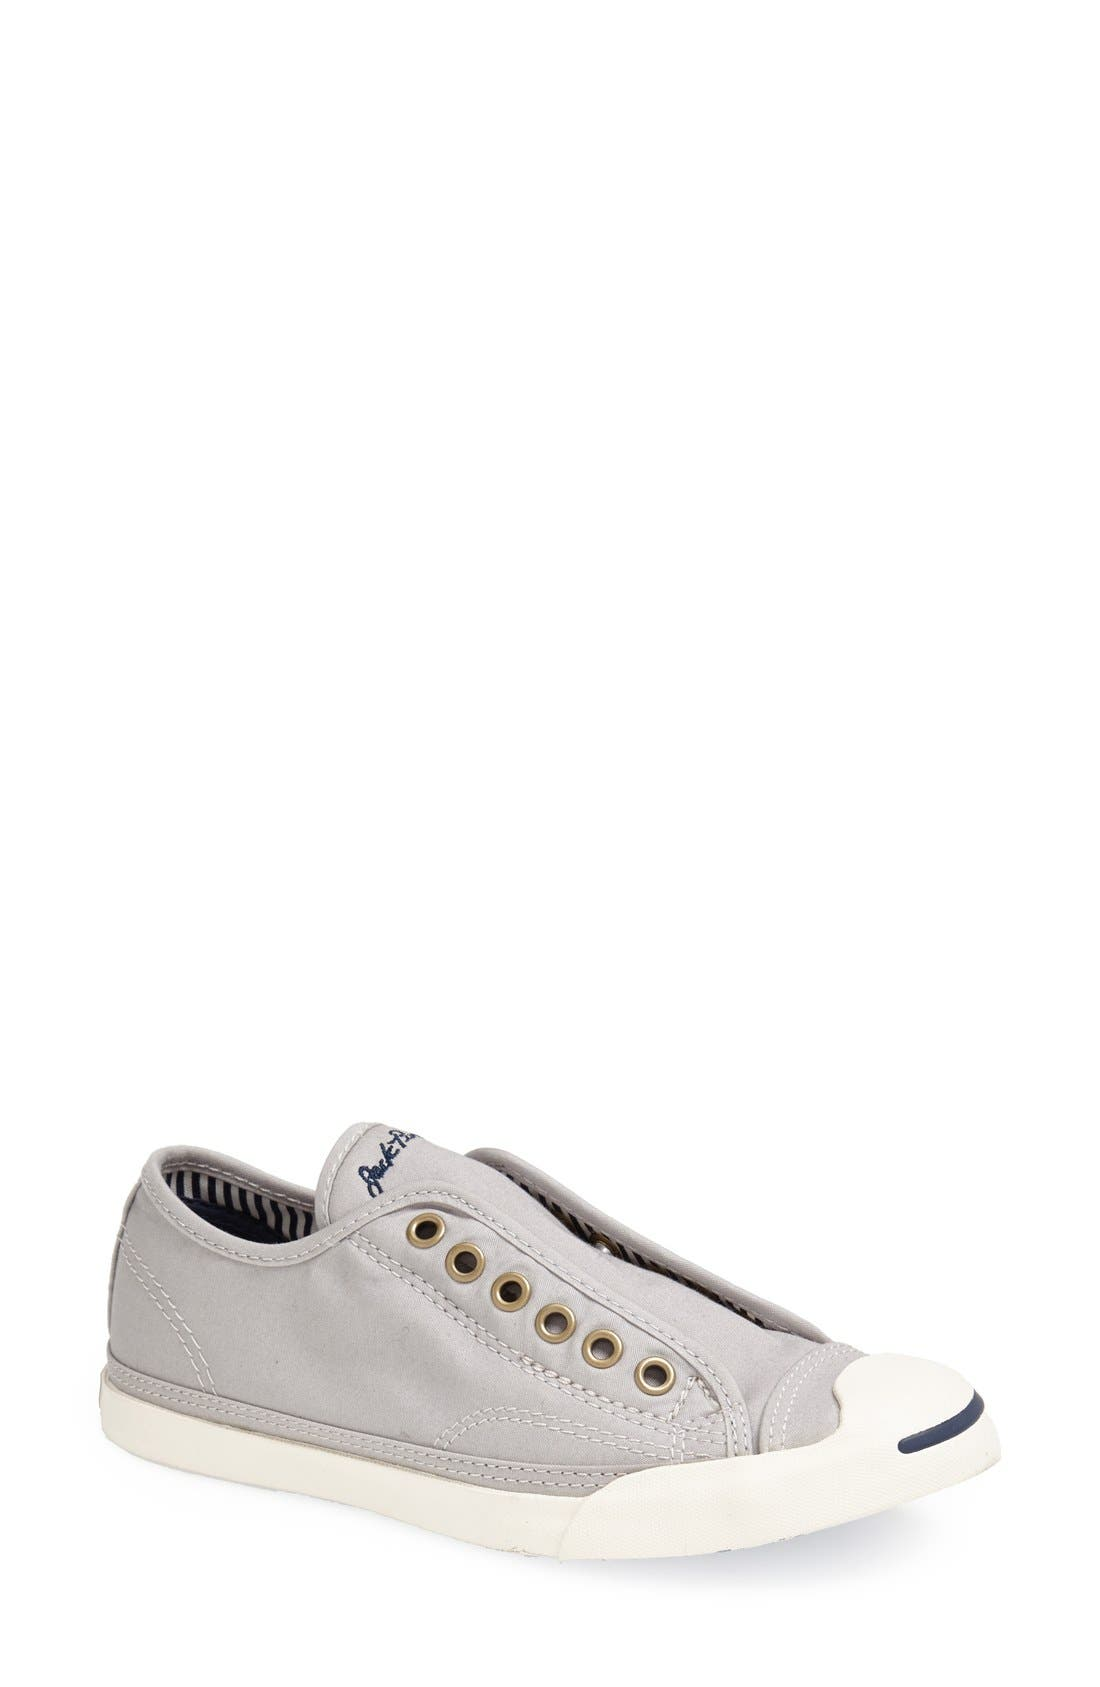 Alternate Image 1 Selected - Converse 'Jack Purcell LP' Sneaker (Women)